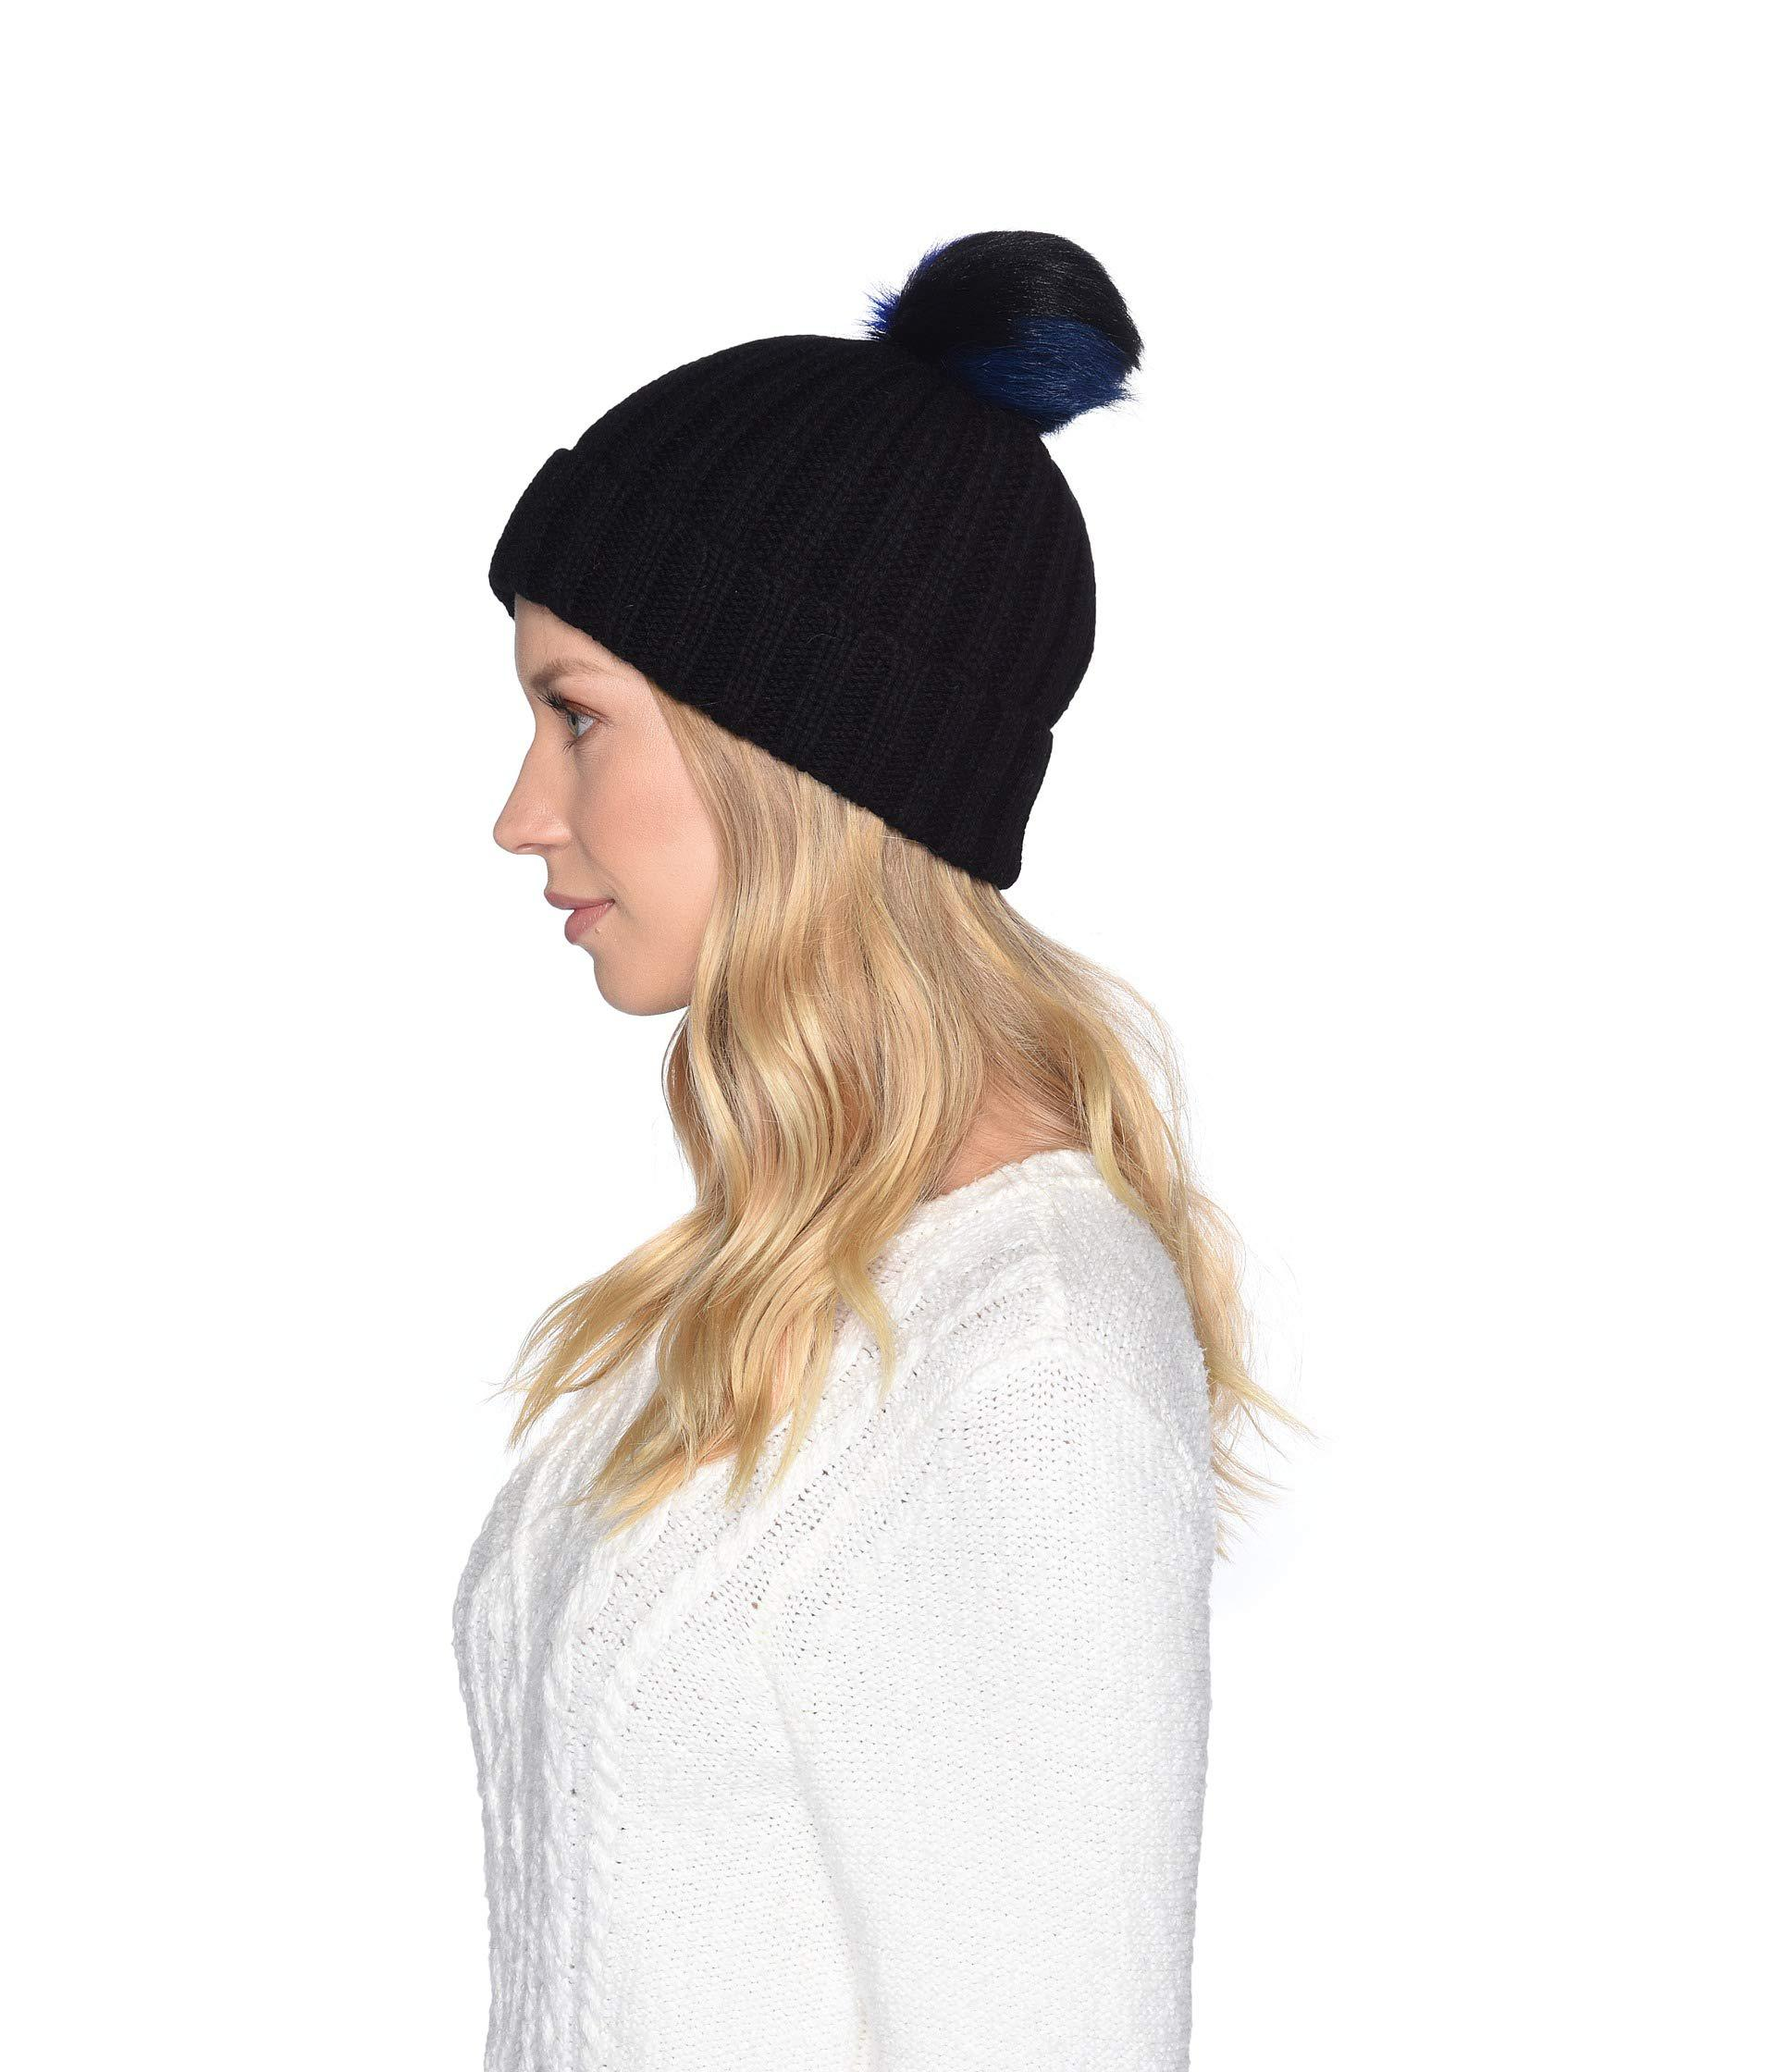 Lyst - UGG Multicolored Sheepskin Pom Knit Hat (black Multi) Caps in Black ca3771e0fbd